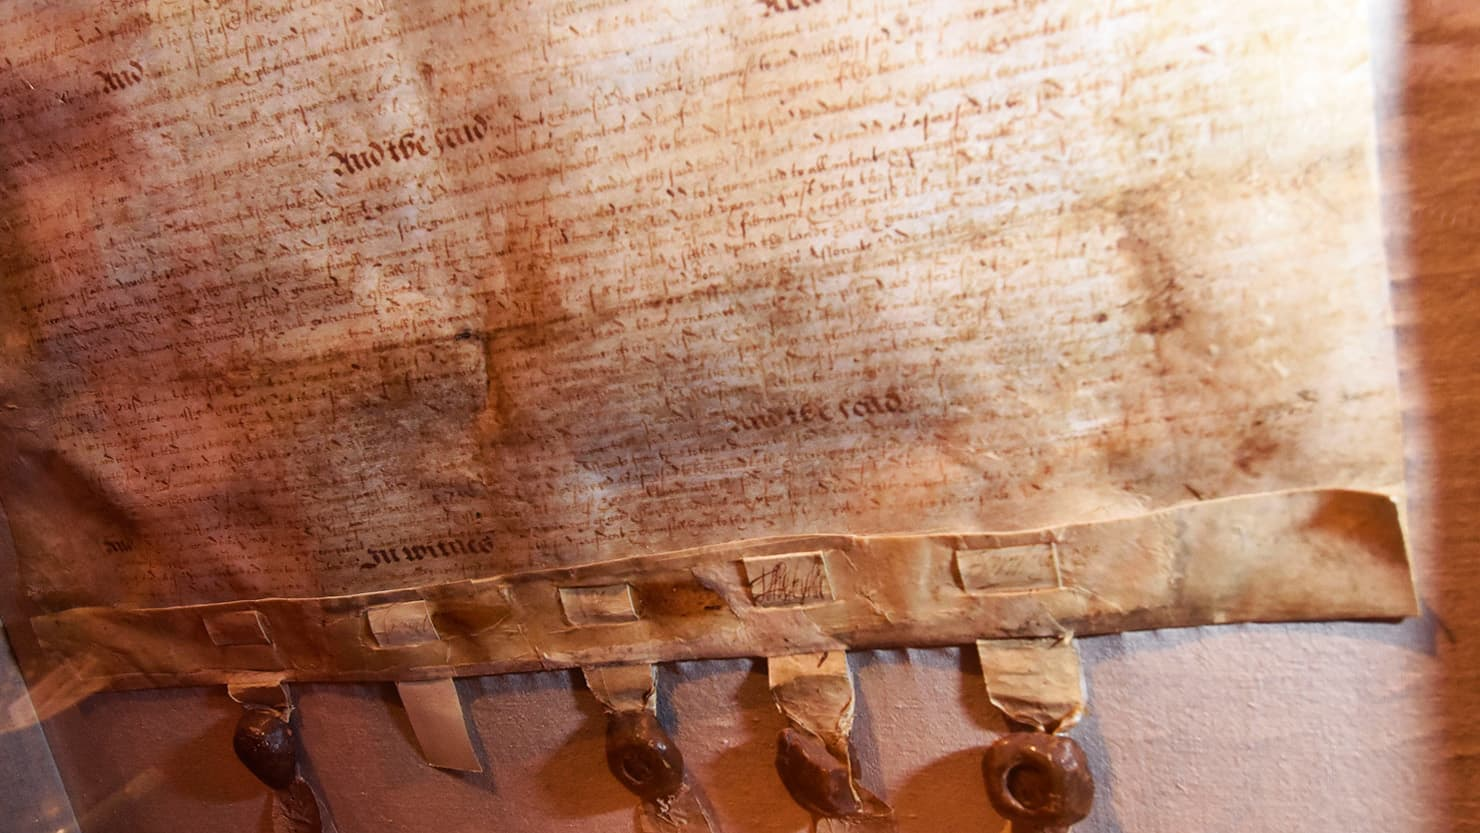 A close up of the Second Peirce Patent on display at The Box, Plymouth